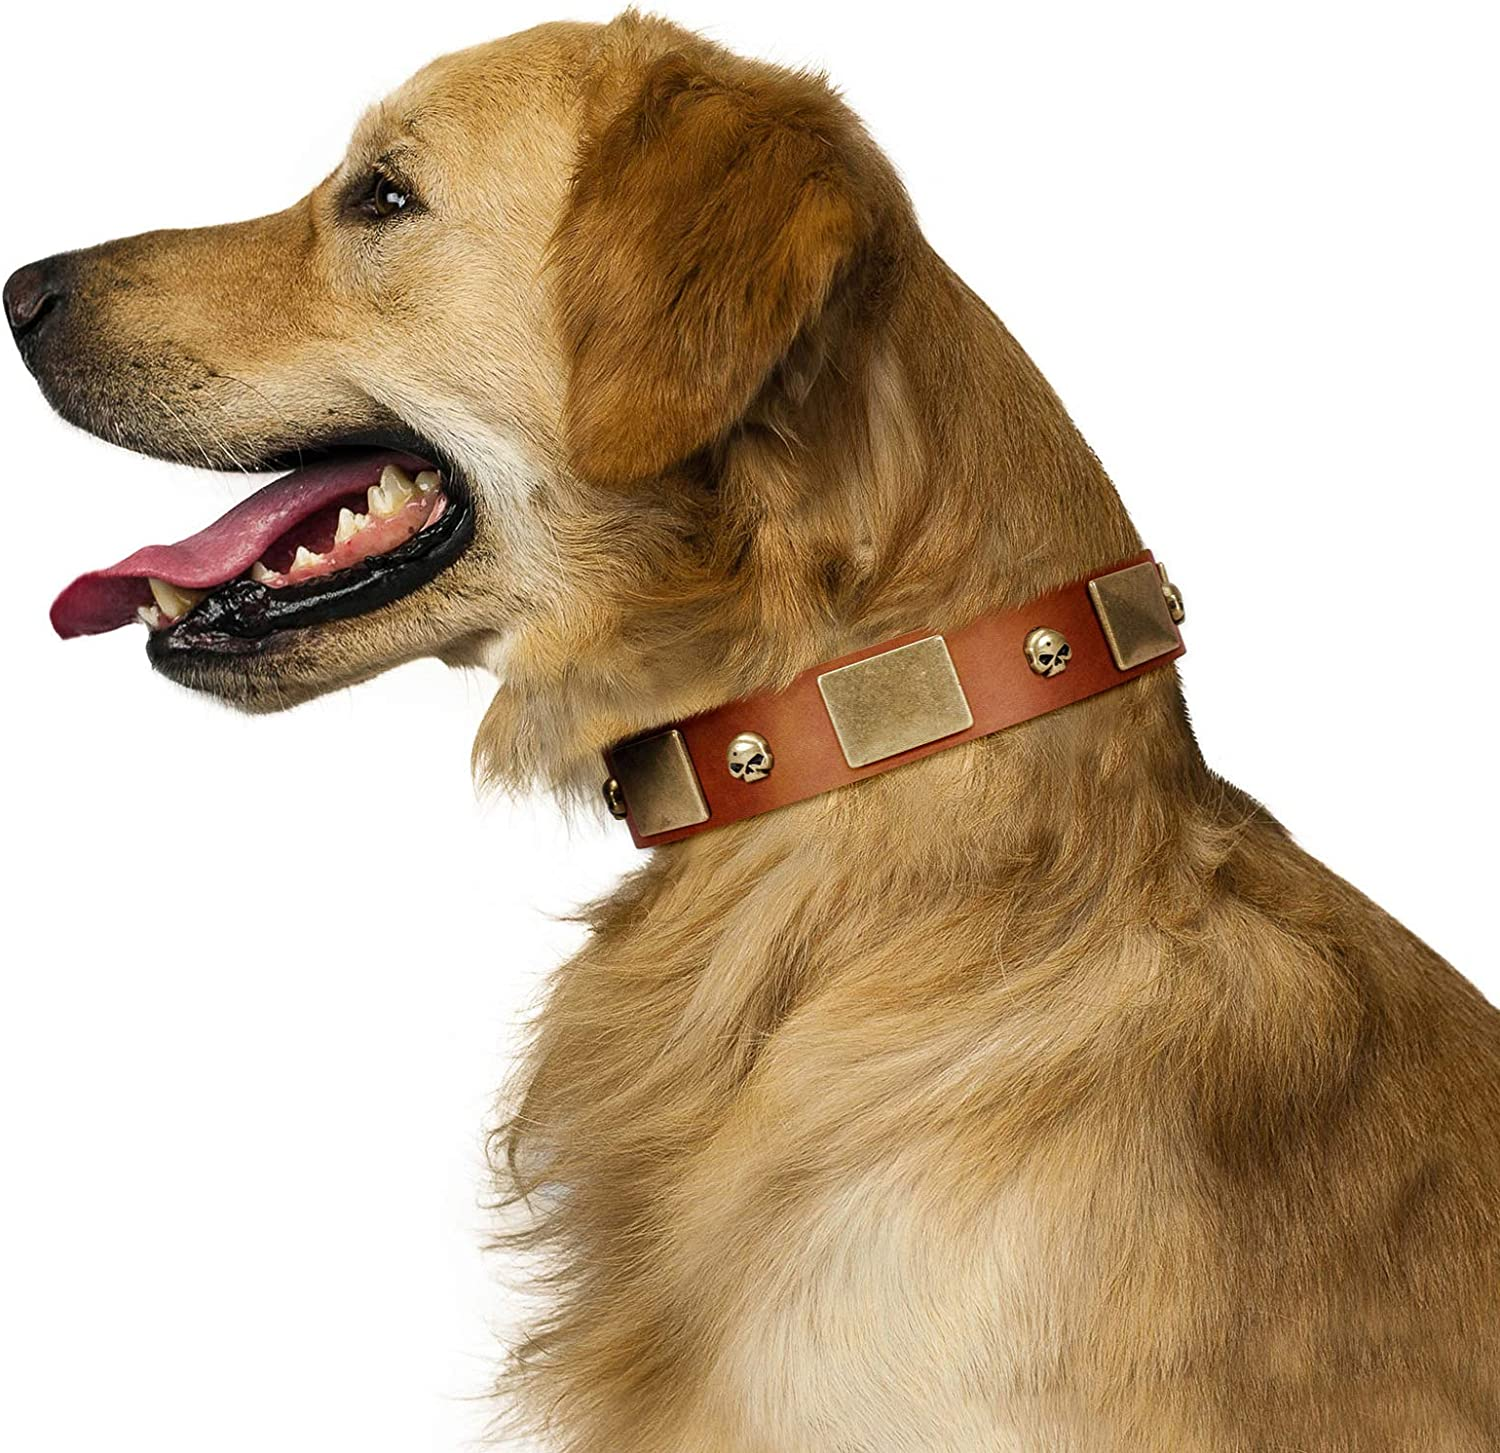 FDT Artisan 28 inch Mutt The Daredevil Tan Leather Dog Collar with Two Rows of Studs  Exclusive Handcrafted Item  1 1 2 inch (40 cm) Wide  Gift Box Included